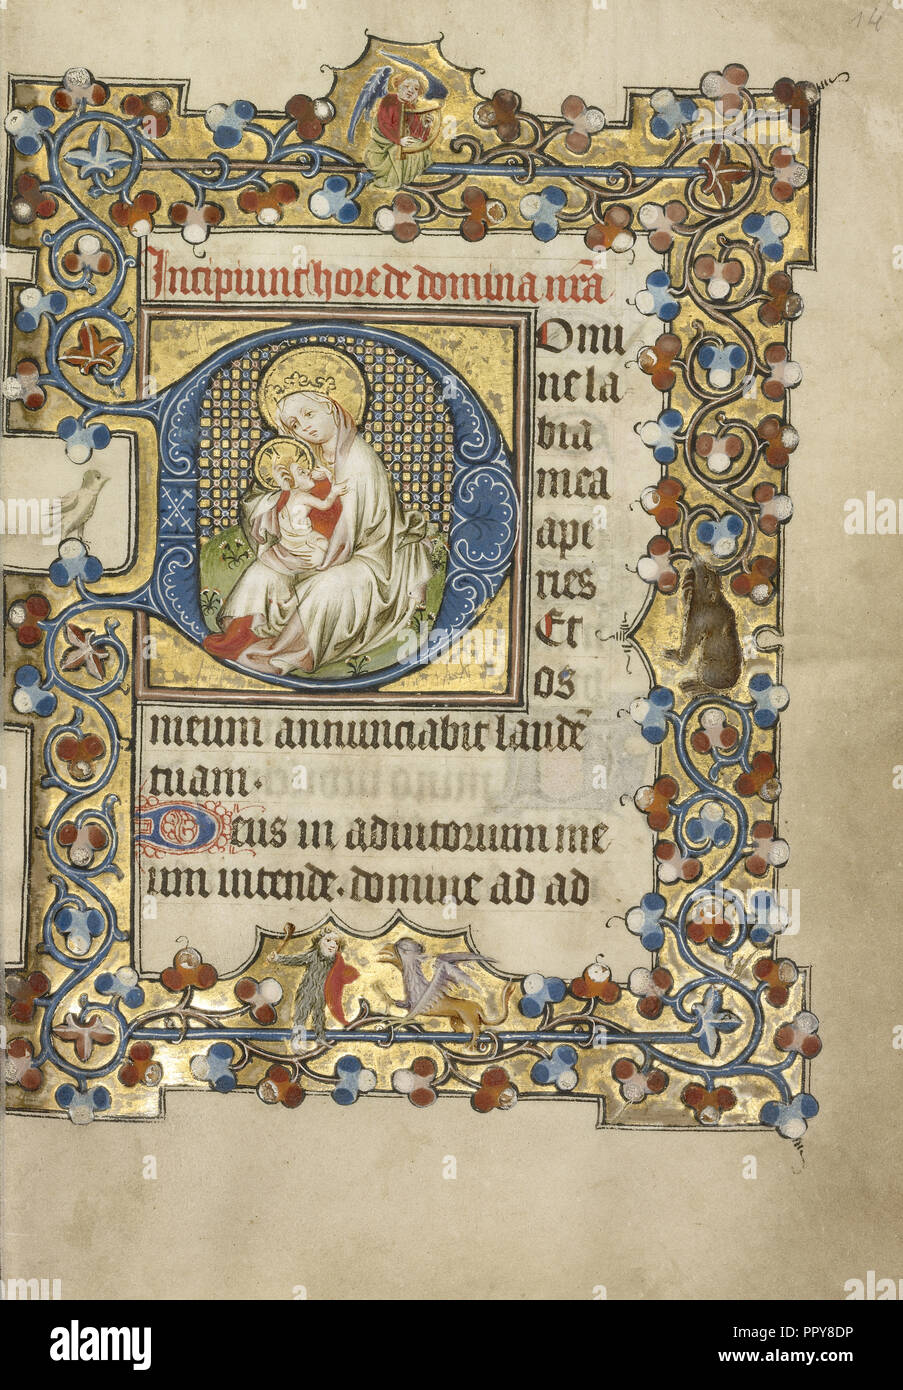 Initial D: The Virgin and Child; Masters of Dirc van Delf, Dutch, active about 1400 - about 1410, Utrecht, probably - Stock Image